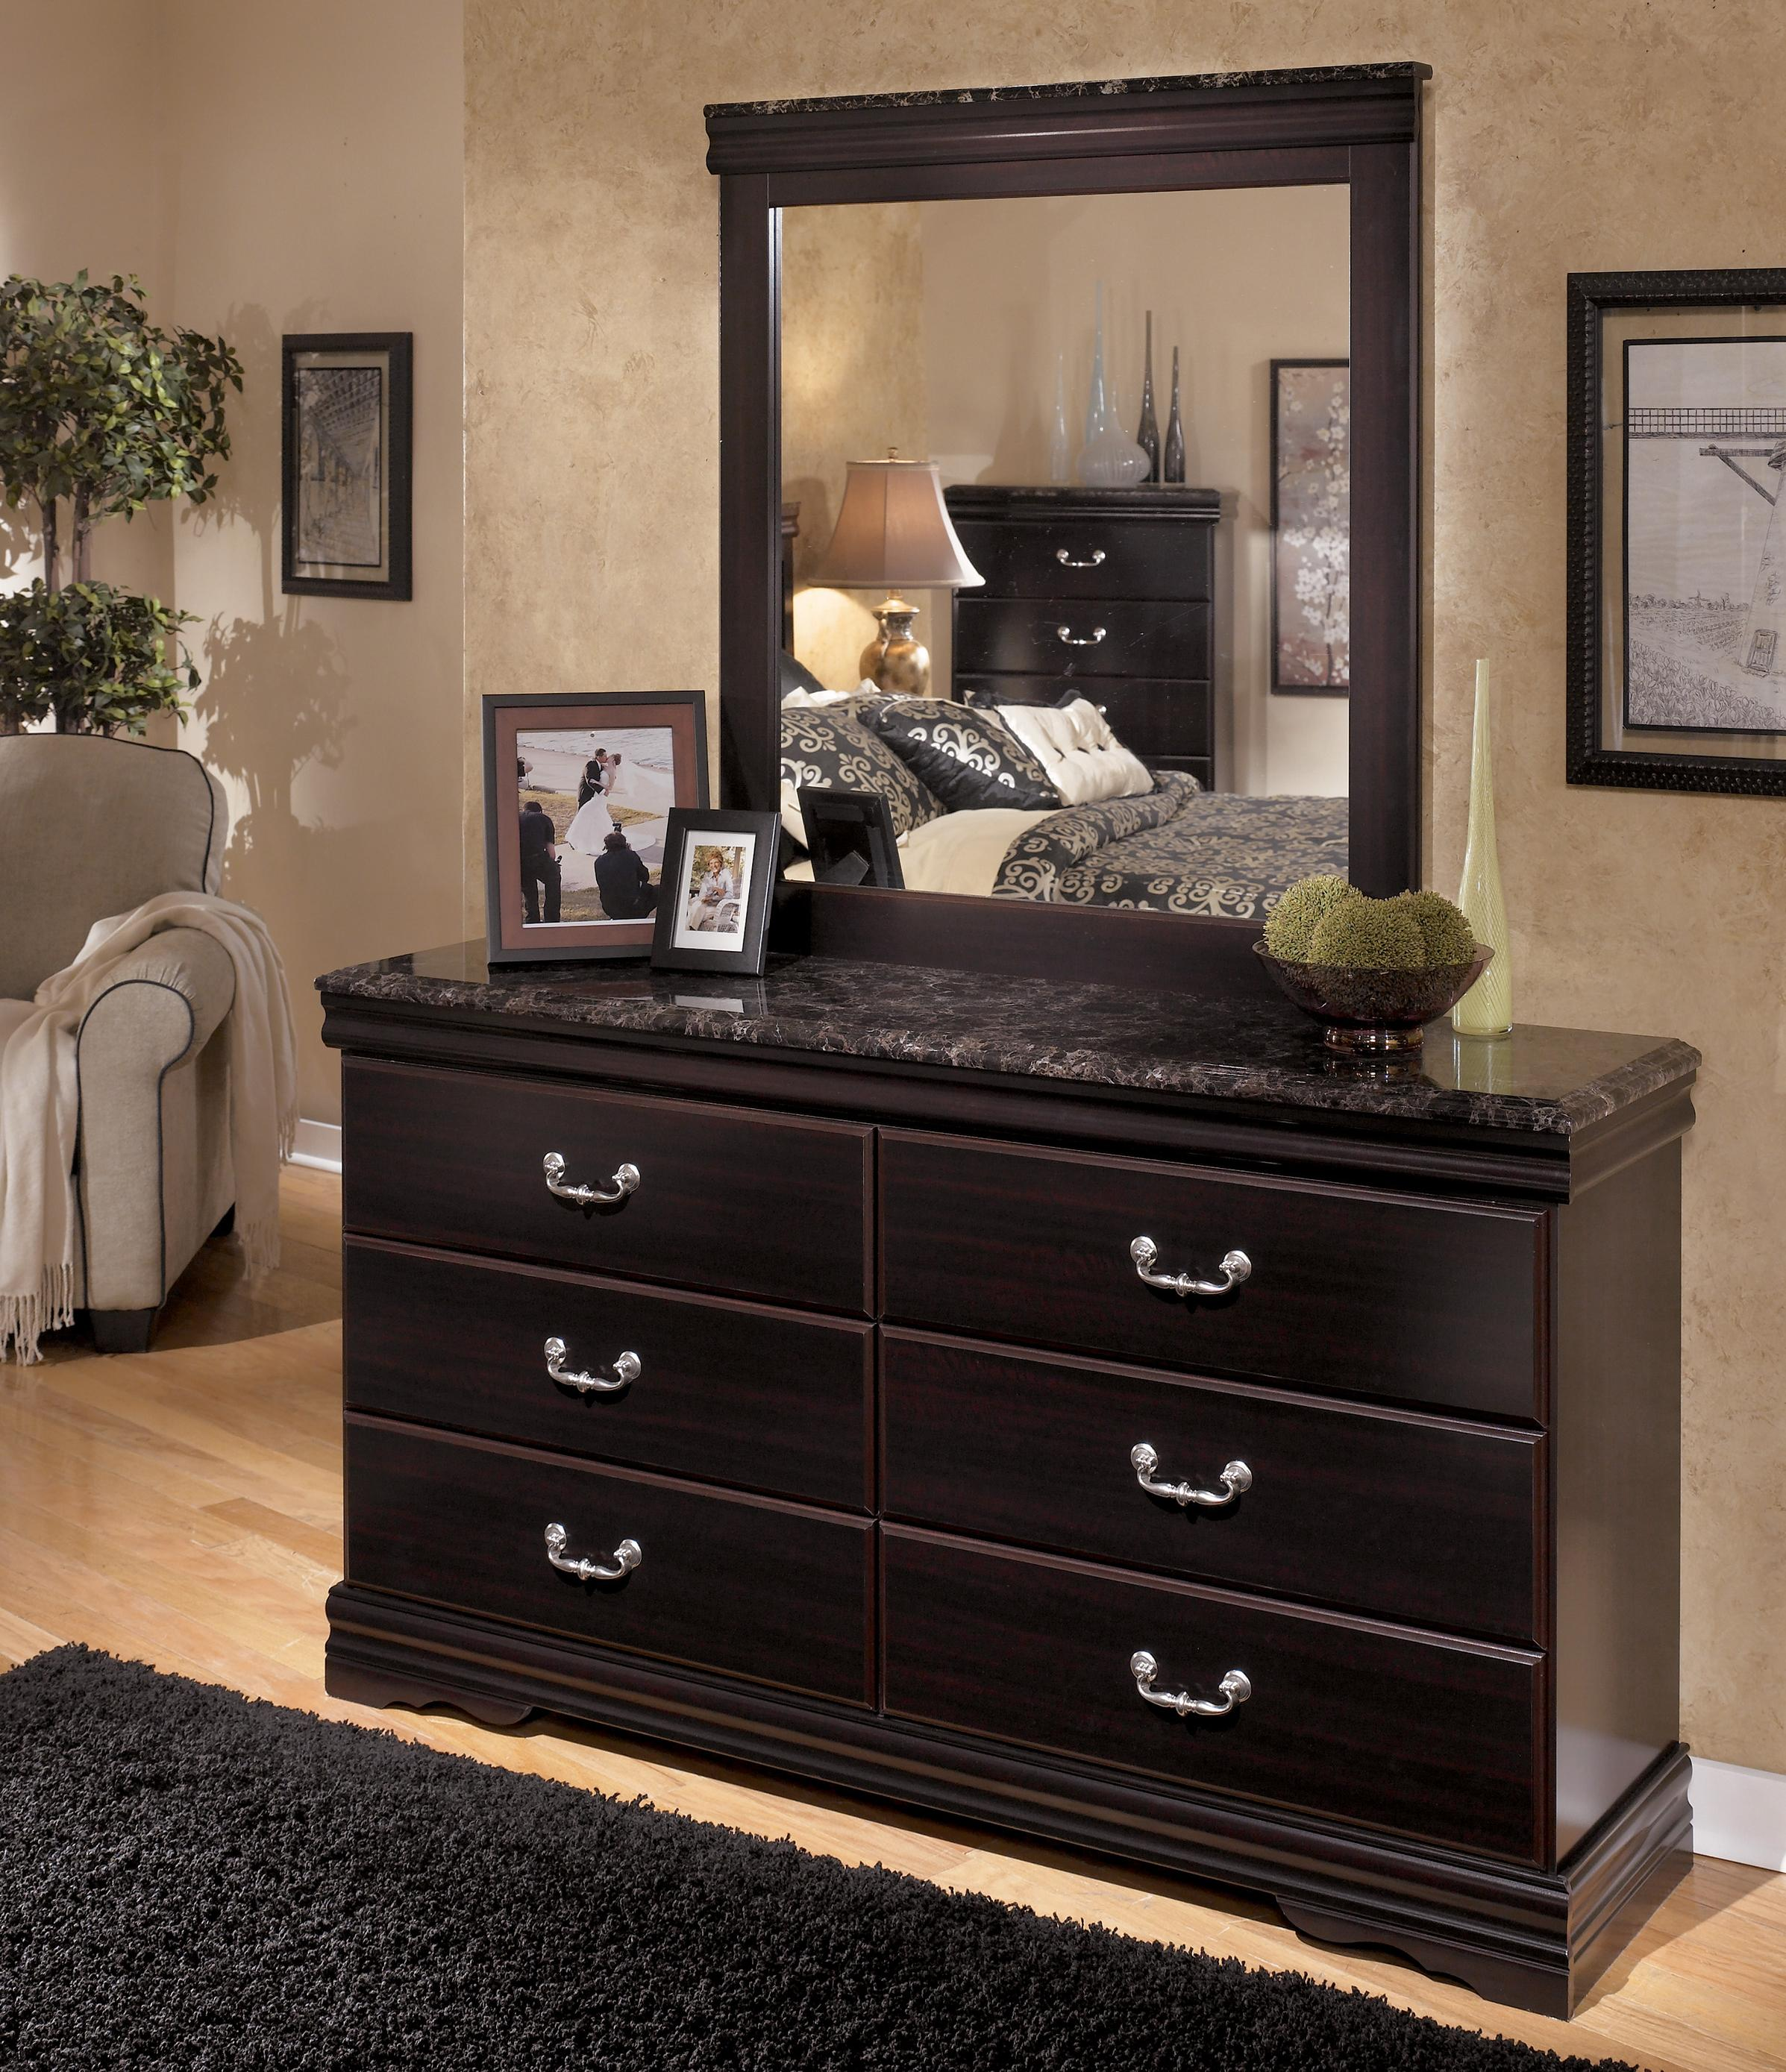 Signature Design by Ashley Esmarelda Dresser & Mirror - Item Number: B179-31+36